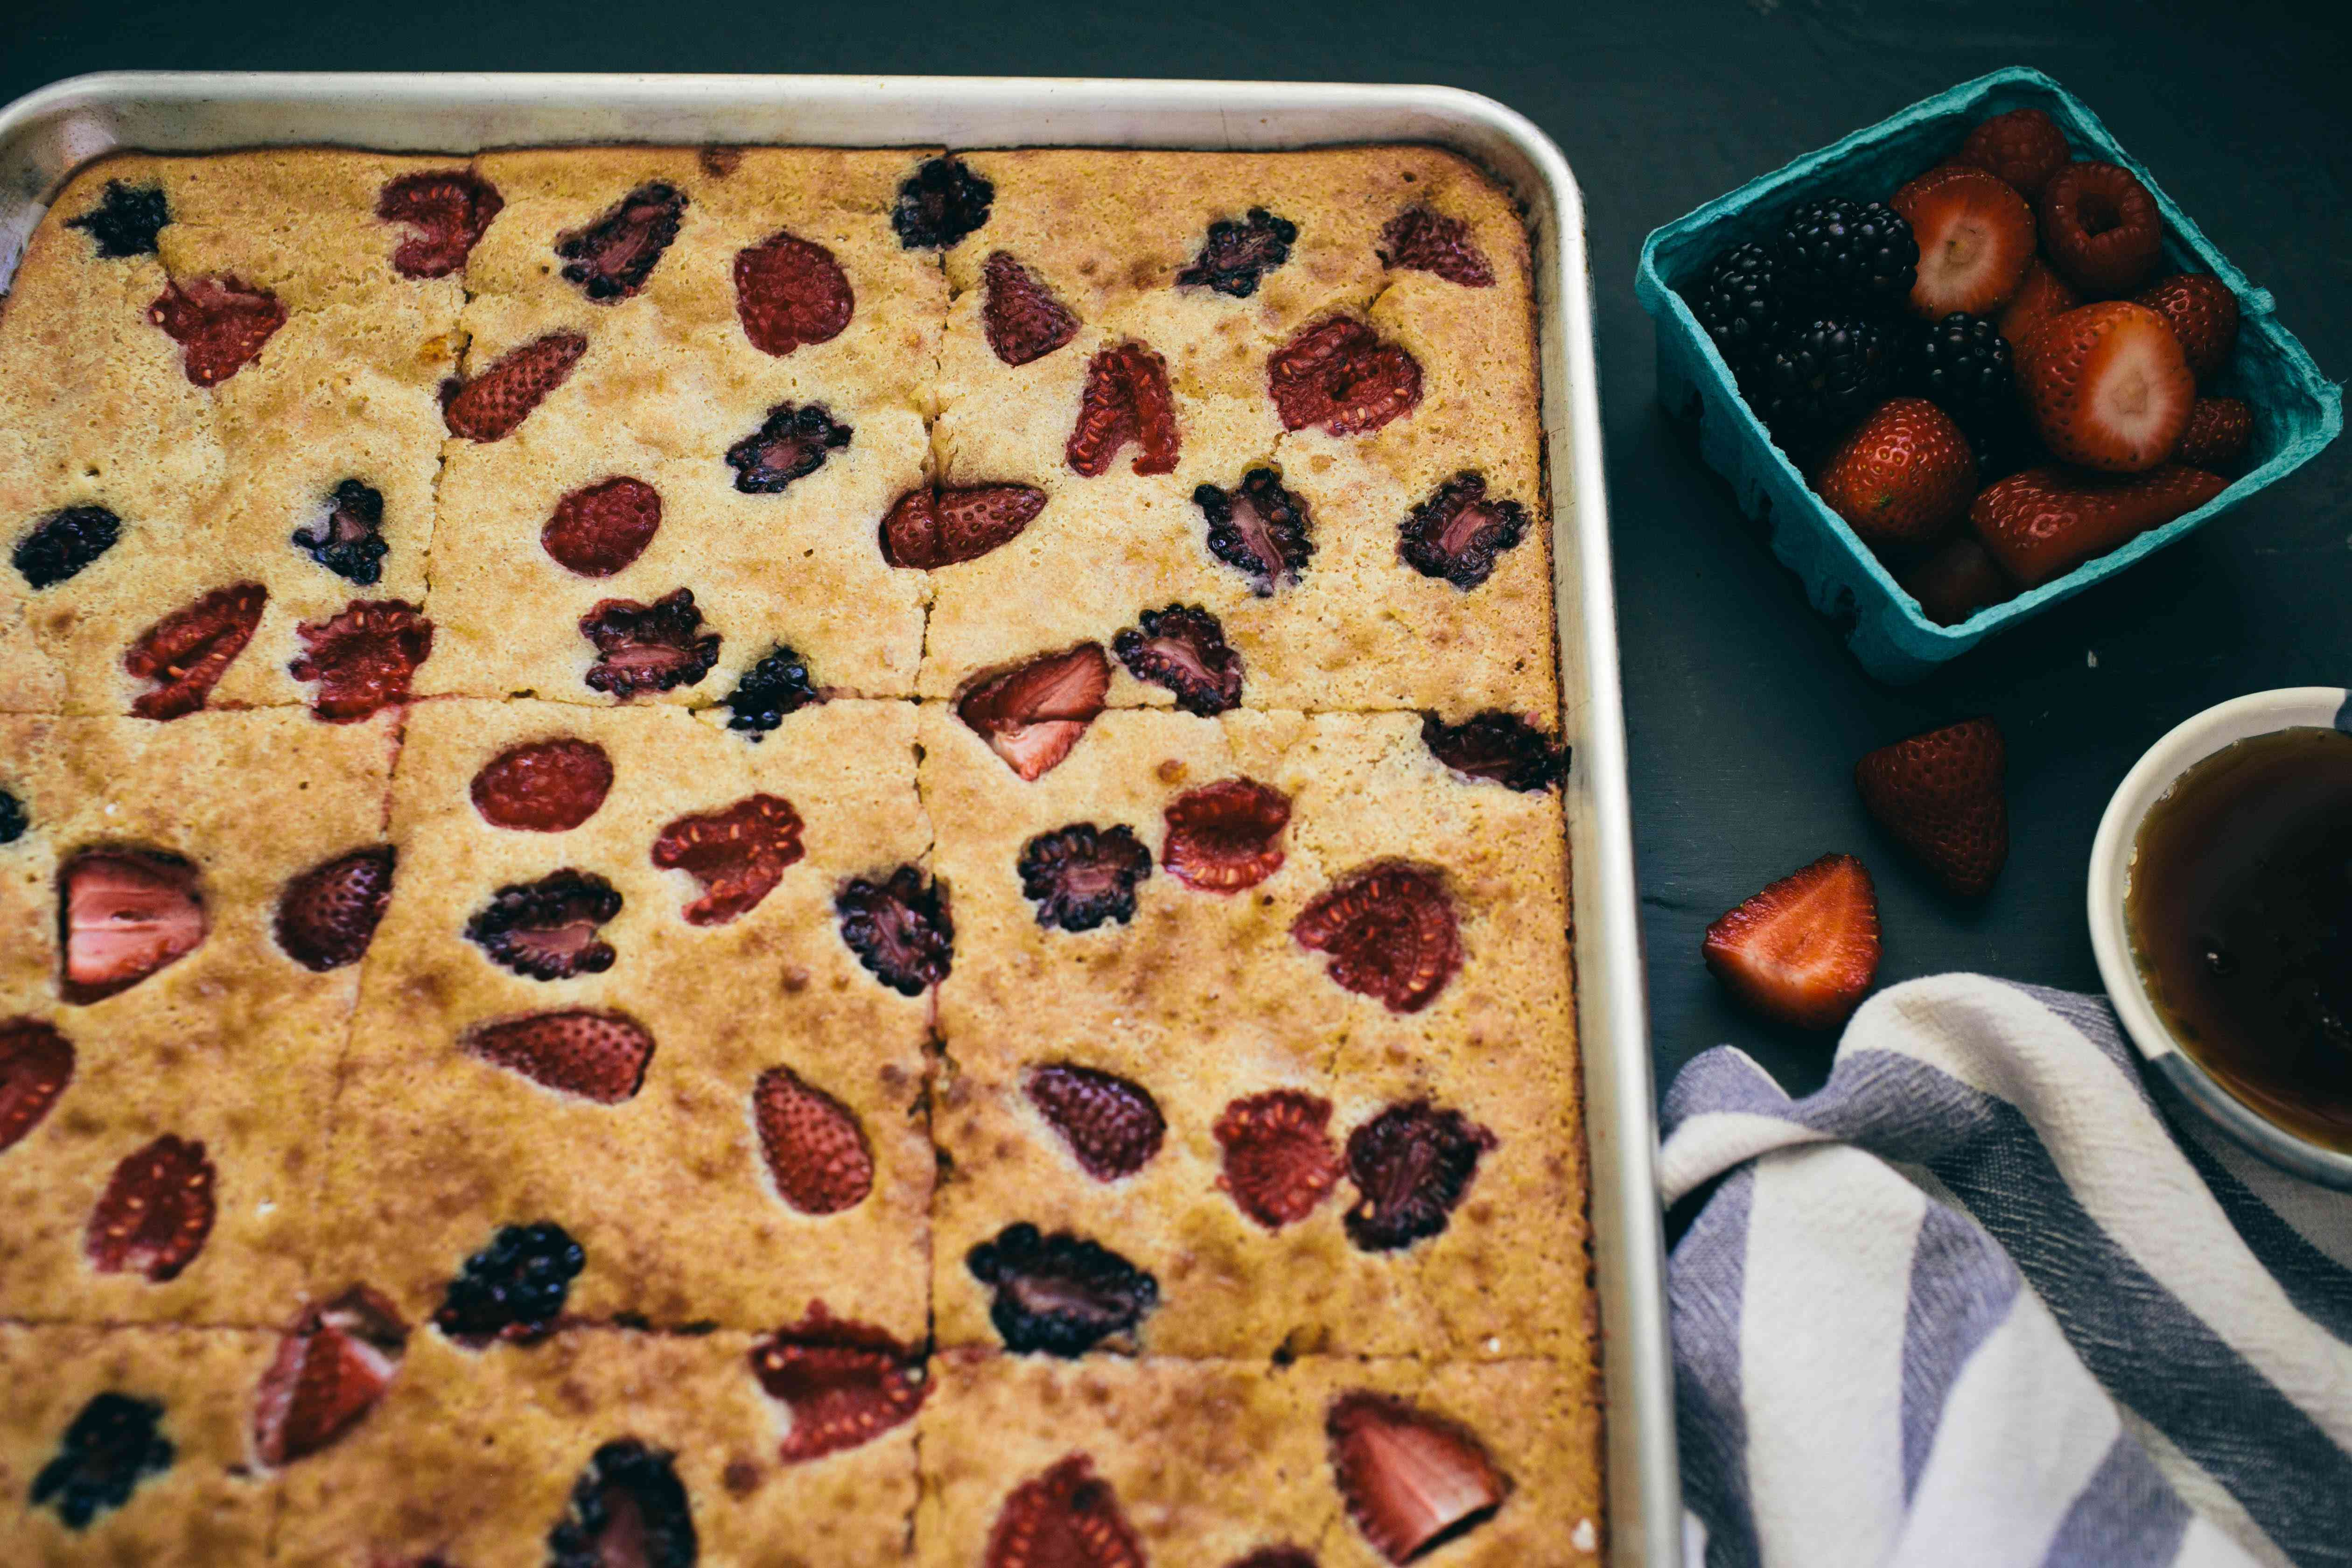 Bake and cut into squares